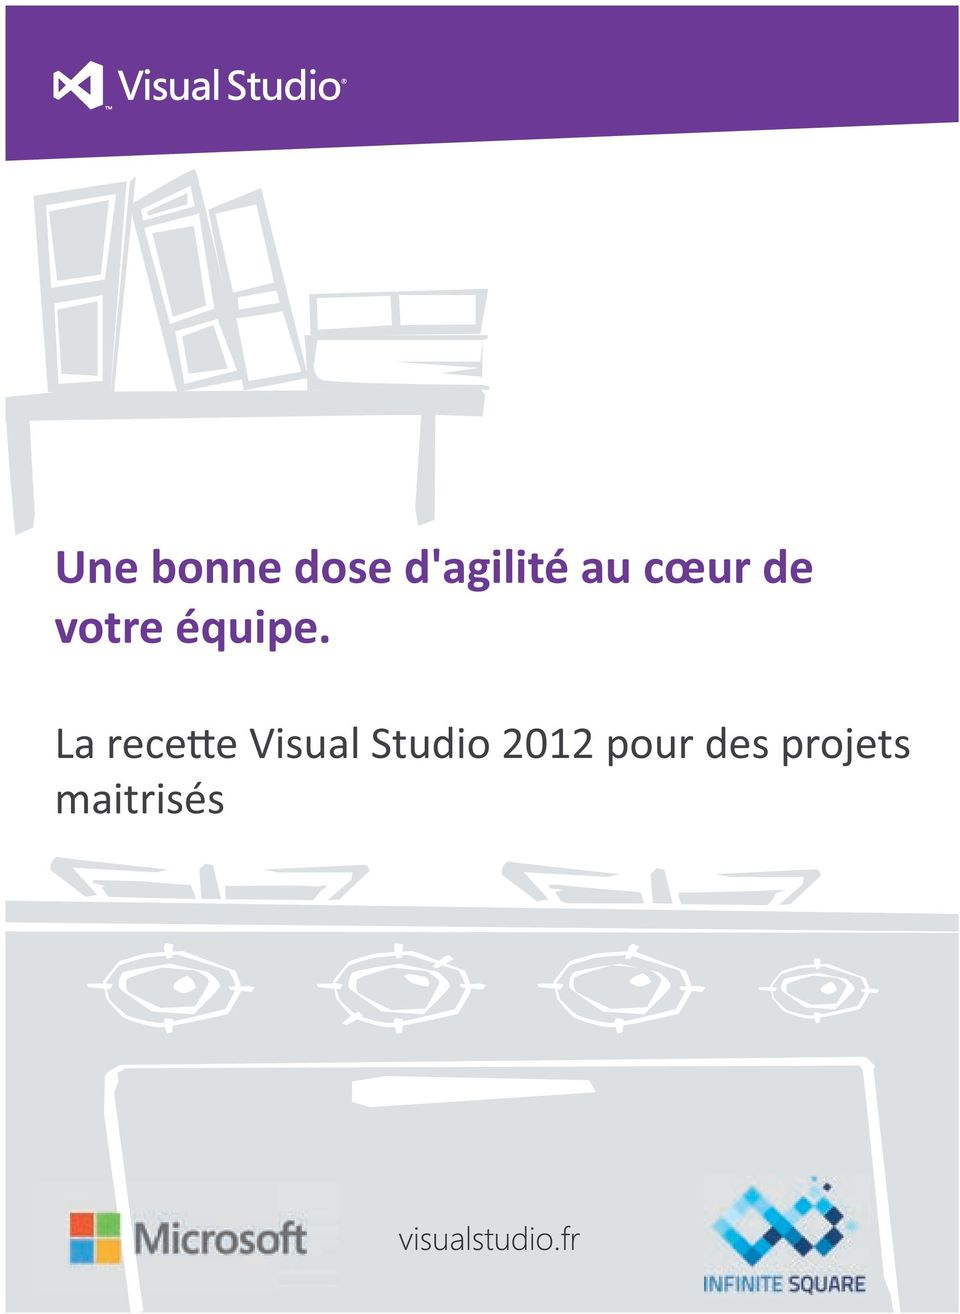 La rece e Visual Studio